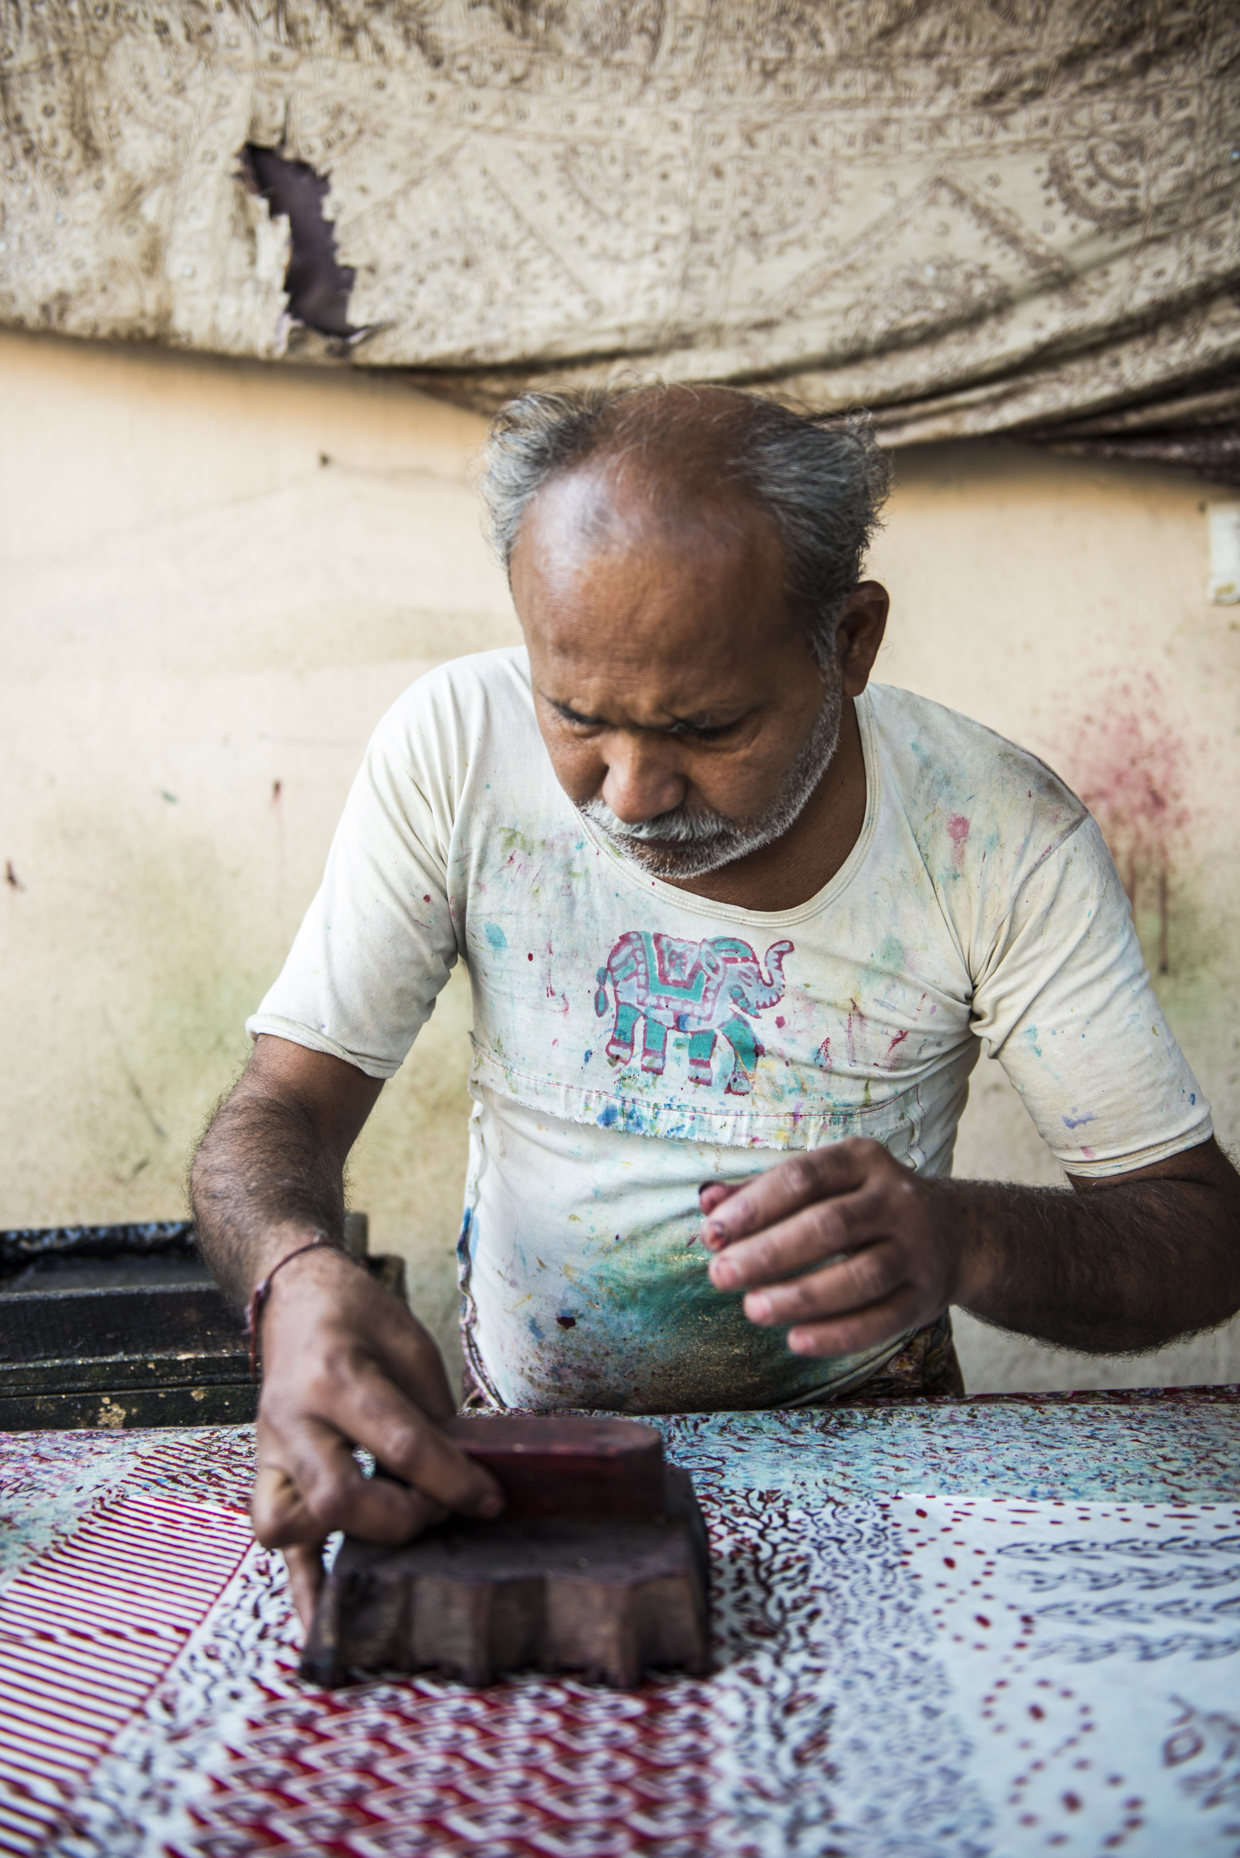 A worker paints on different symbols and designs for a completely hand made carpet.